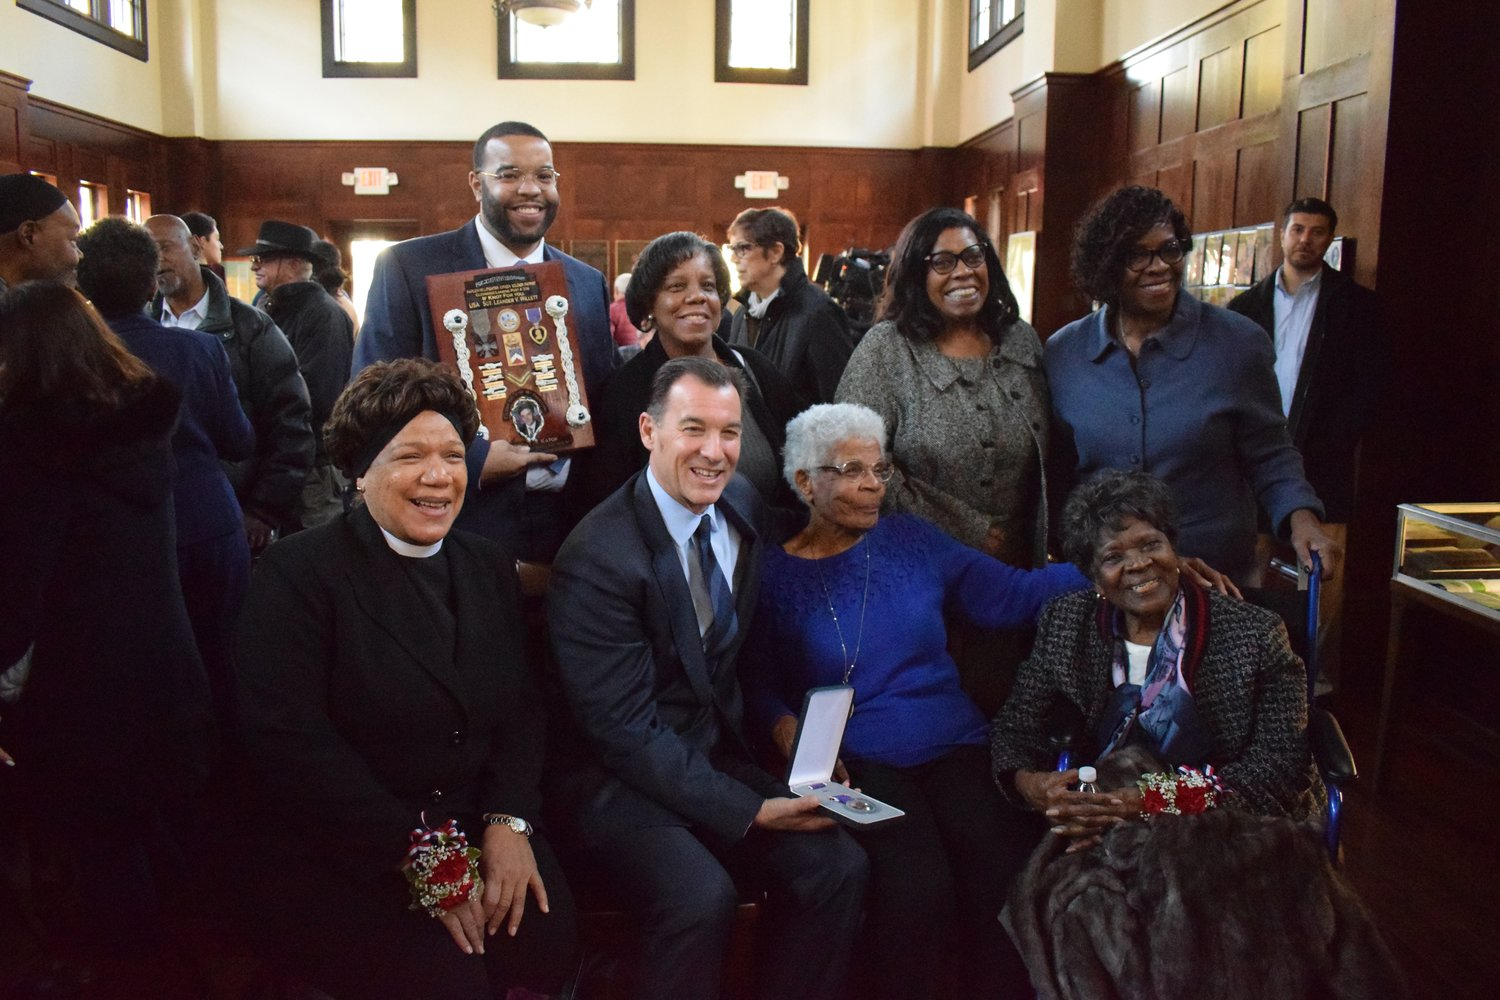 U.S. Rep. Tom Suozzi presented a Purple Heart to the family of the late Sgt. Leander Willett.